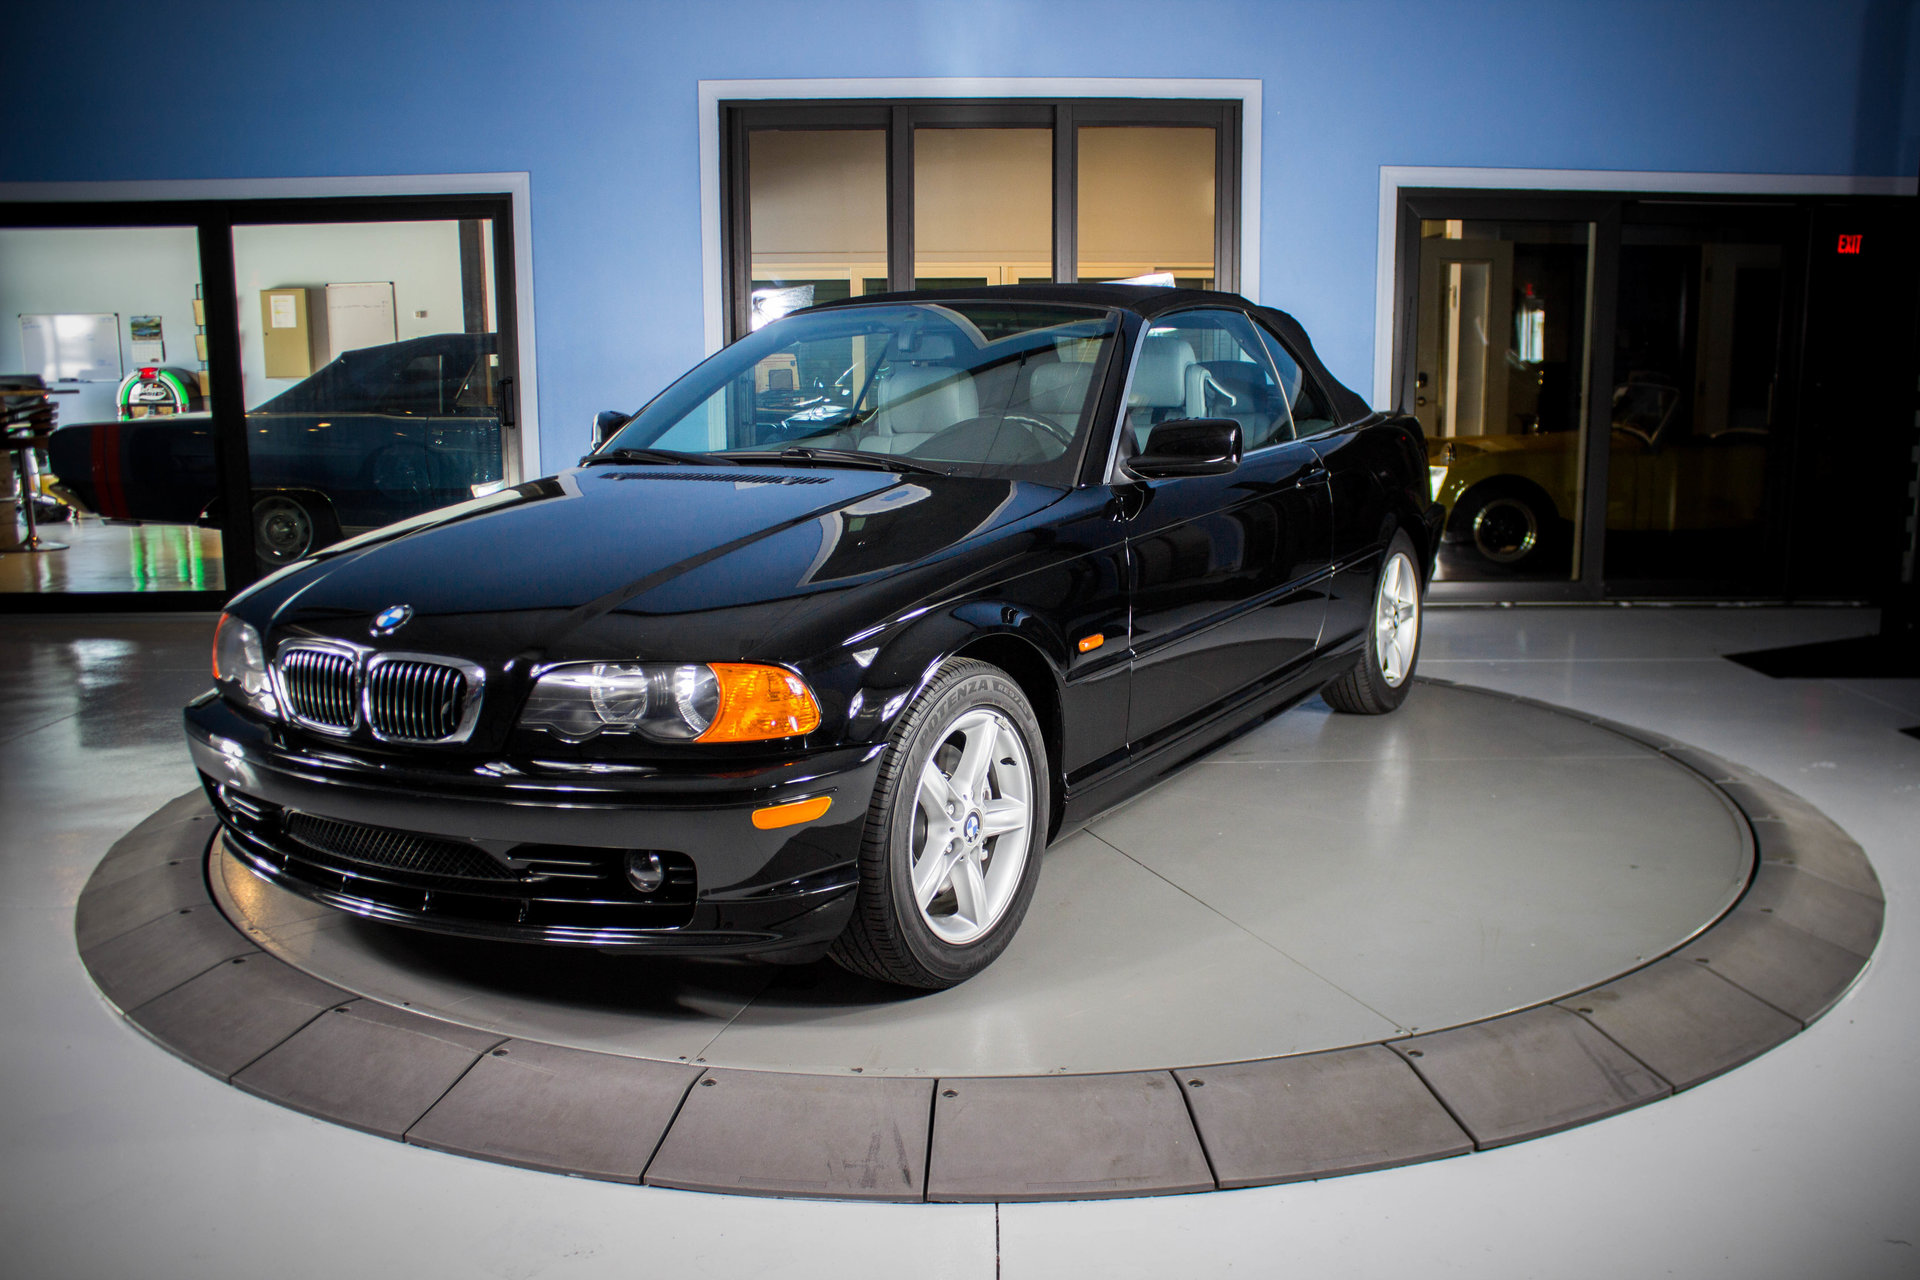 2002 bmw 325ci classic cars used cars for sale in tampa fl. Black Bedroom Furniture Sets. Home Design Ideas